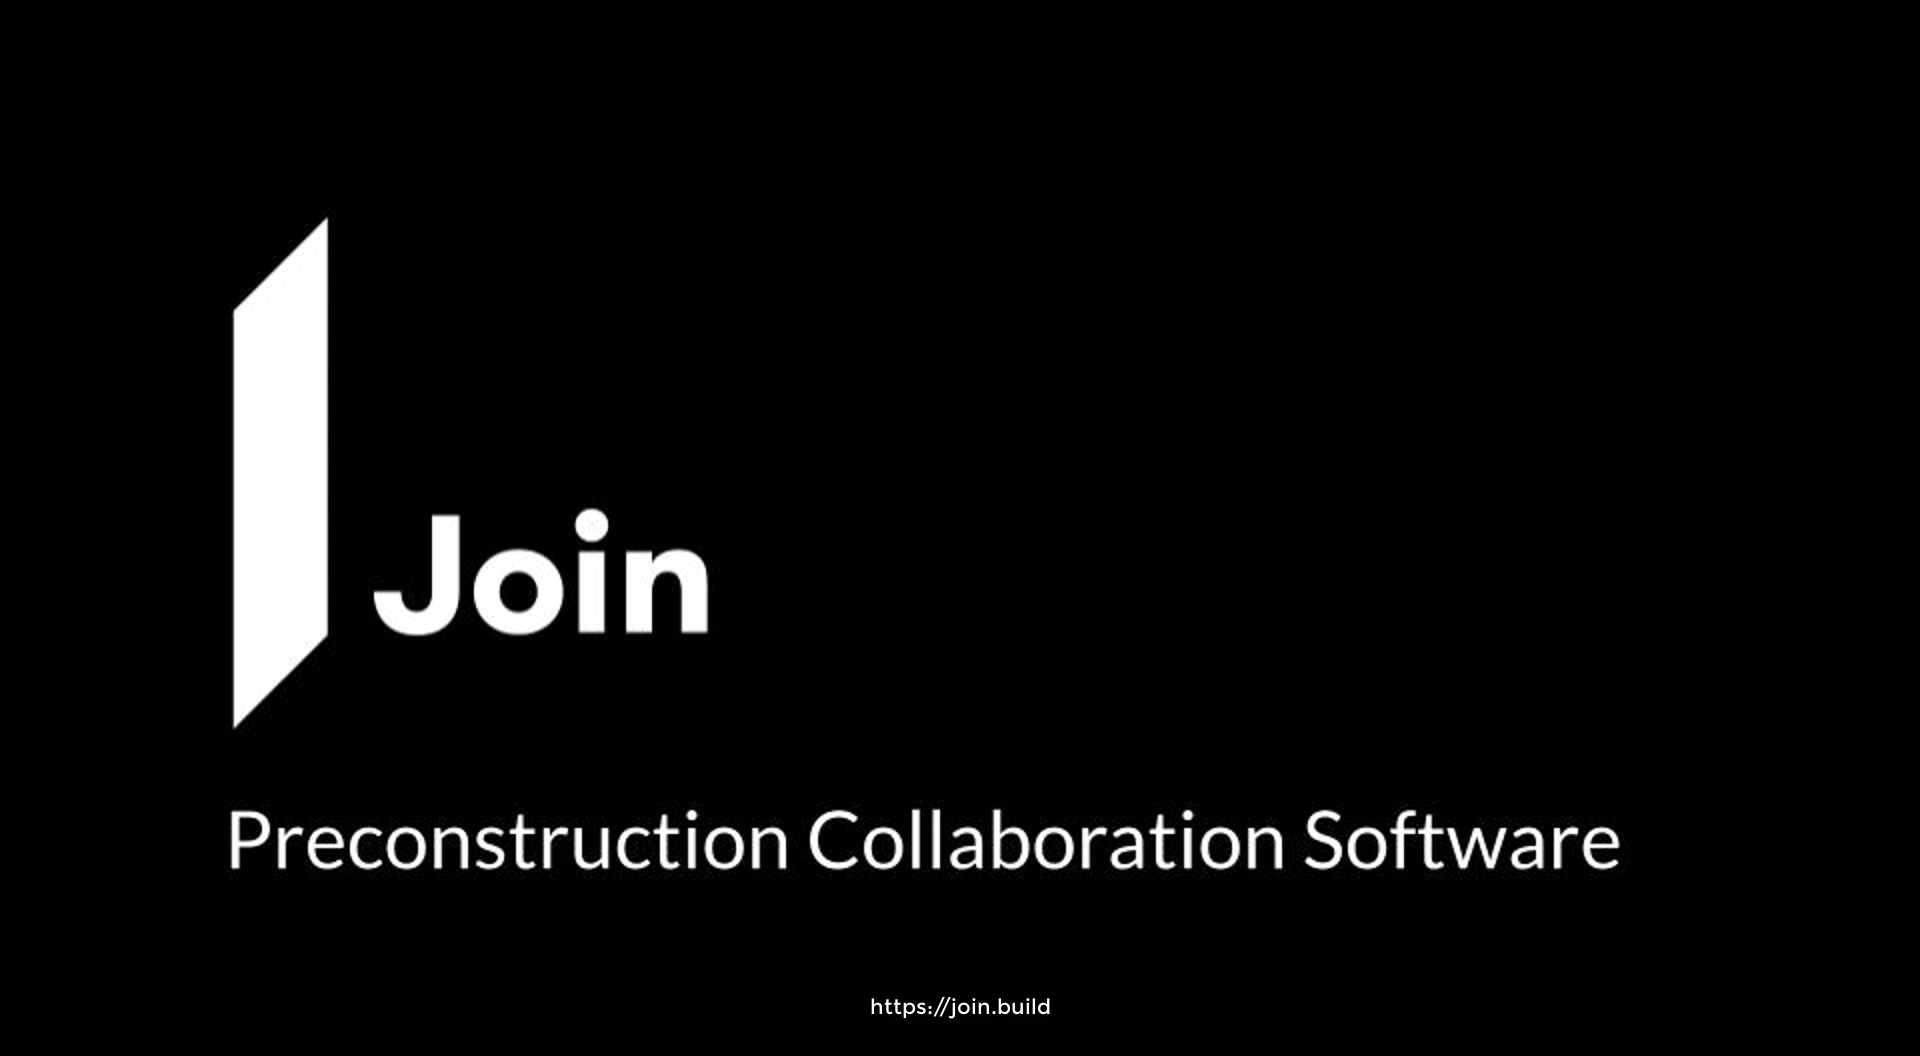 5-Minute Introduction to Join